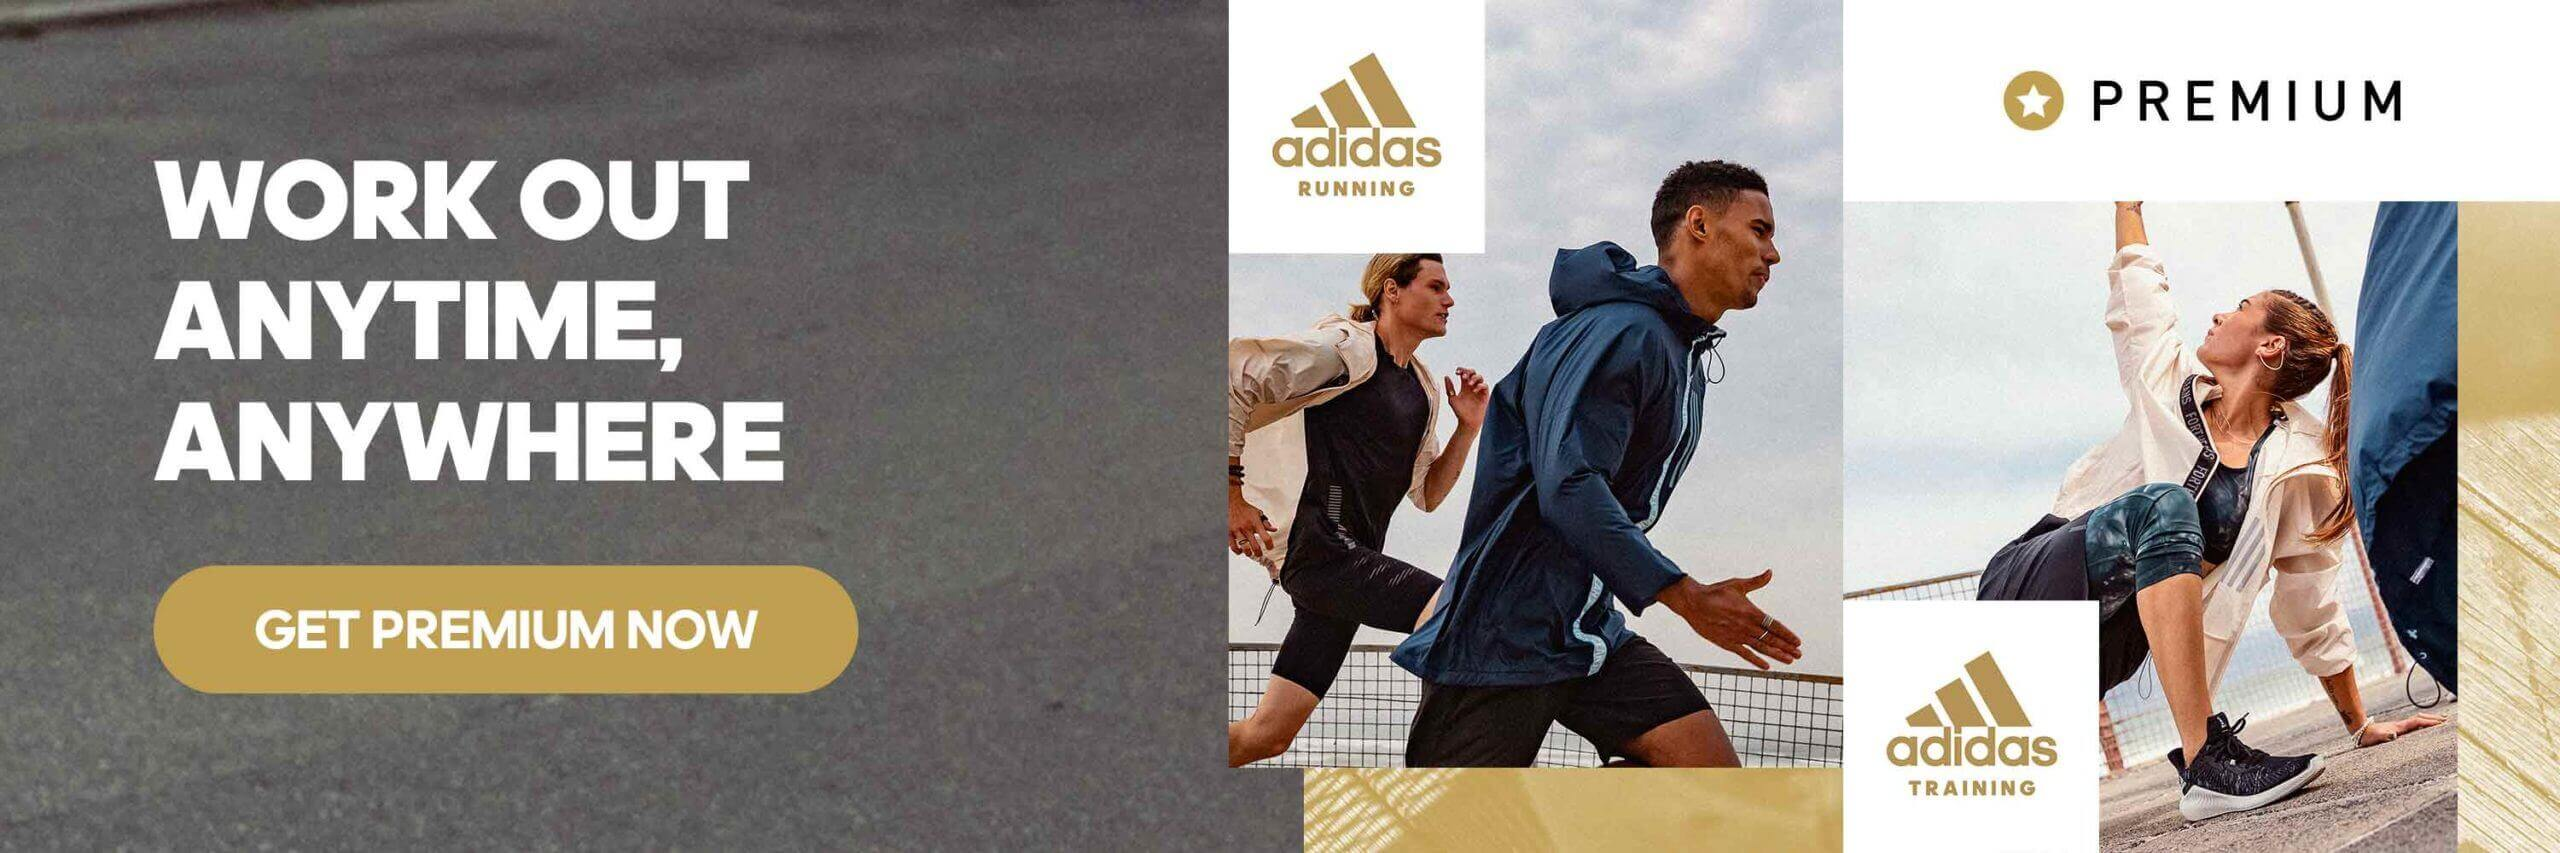 premium blog in text banner en scaled Get Fit with an adidas Runtastic Premium Membership    Are you ready to build healthier habits and lead a fit lifestyle? No matter your goals, with the adidas Runtastic apps and Premium Membership, you'll find tips from experts, loads of motivation, as well as unlimited individual training plans both in the adidas Training and Running app. Choose your ideal plan, get started, and reach your goals one step at a time! Fitness